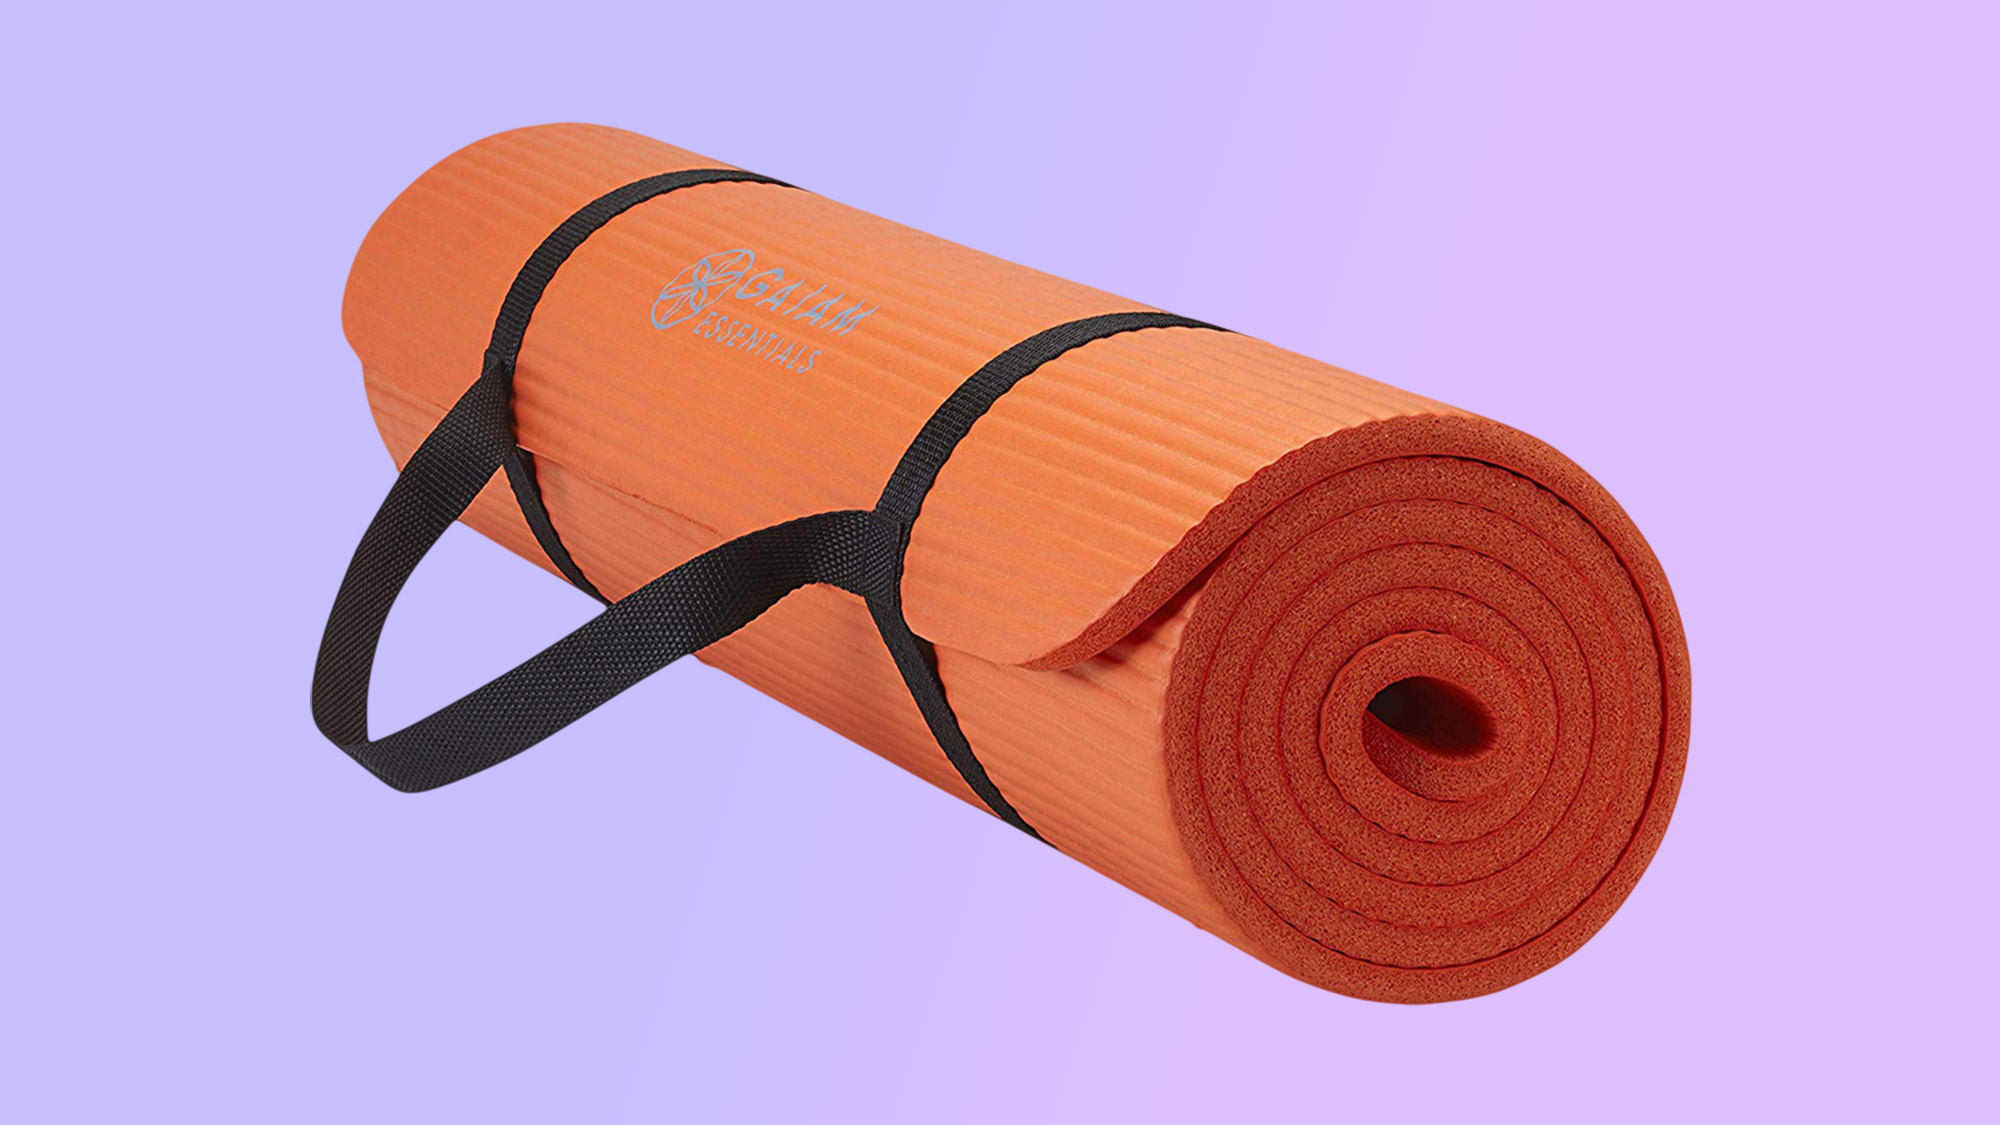 Best home gym equipment: Gaiam Essentials Thick Yoga Mat Fitness & Exercise Mat